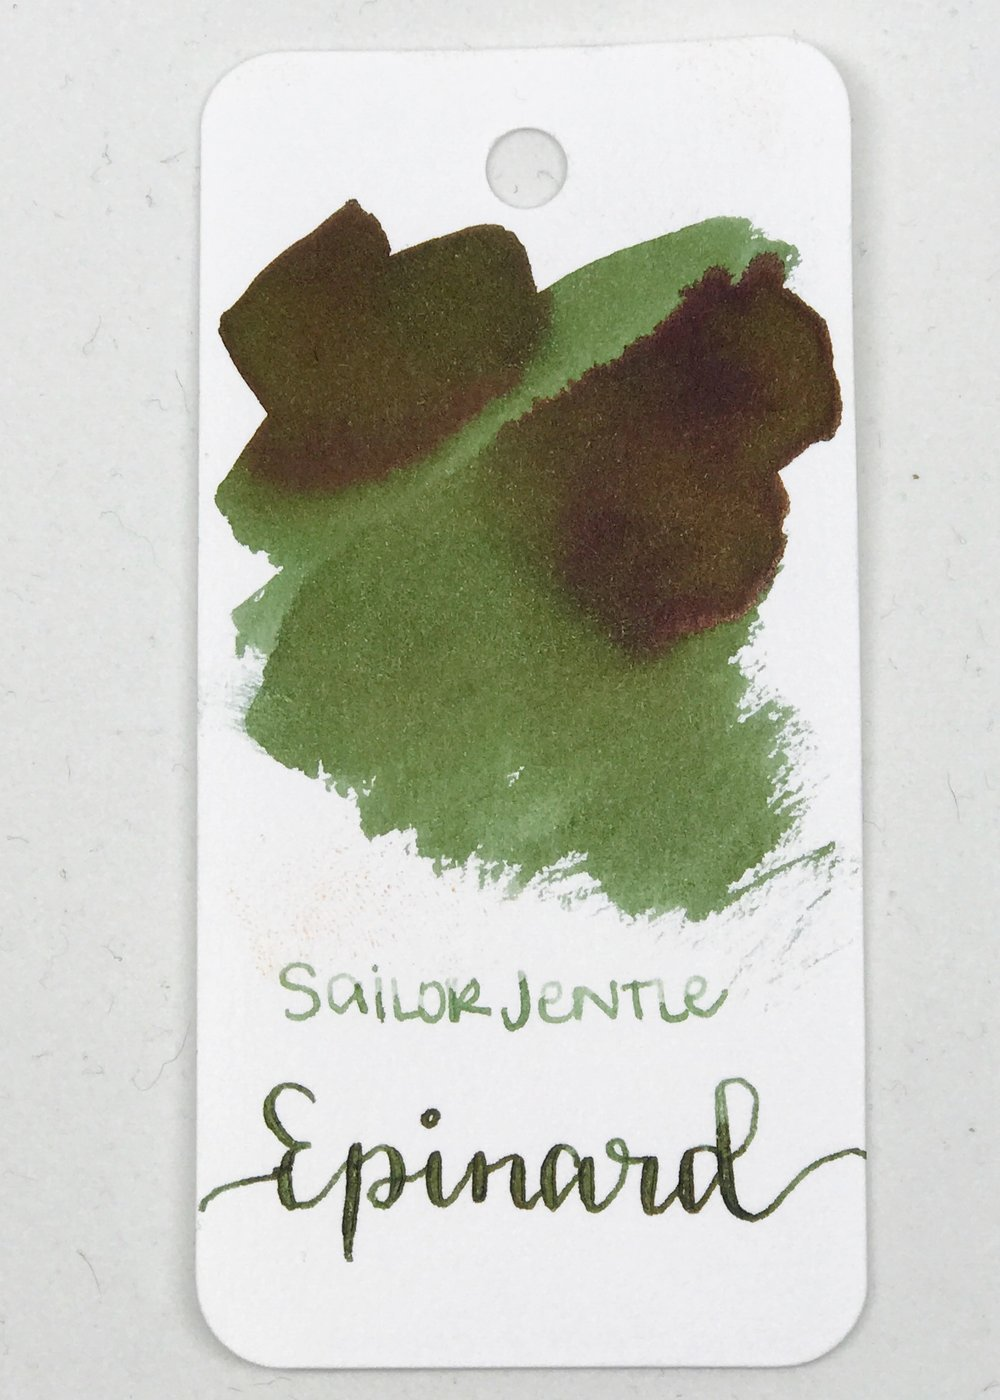 The color:  - Epinard is a spinach green color, with a red/brown sheen that shows on certain papers.